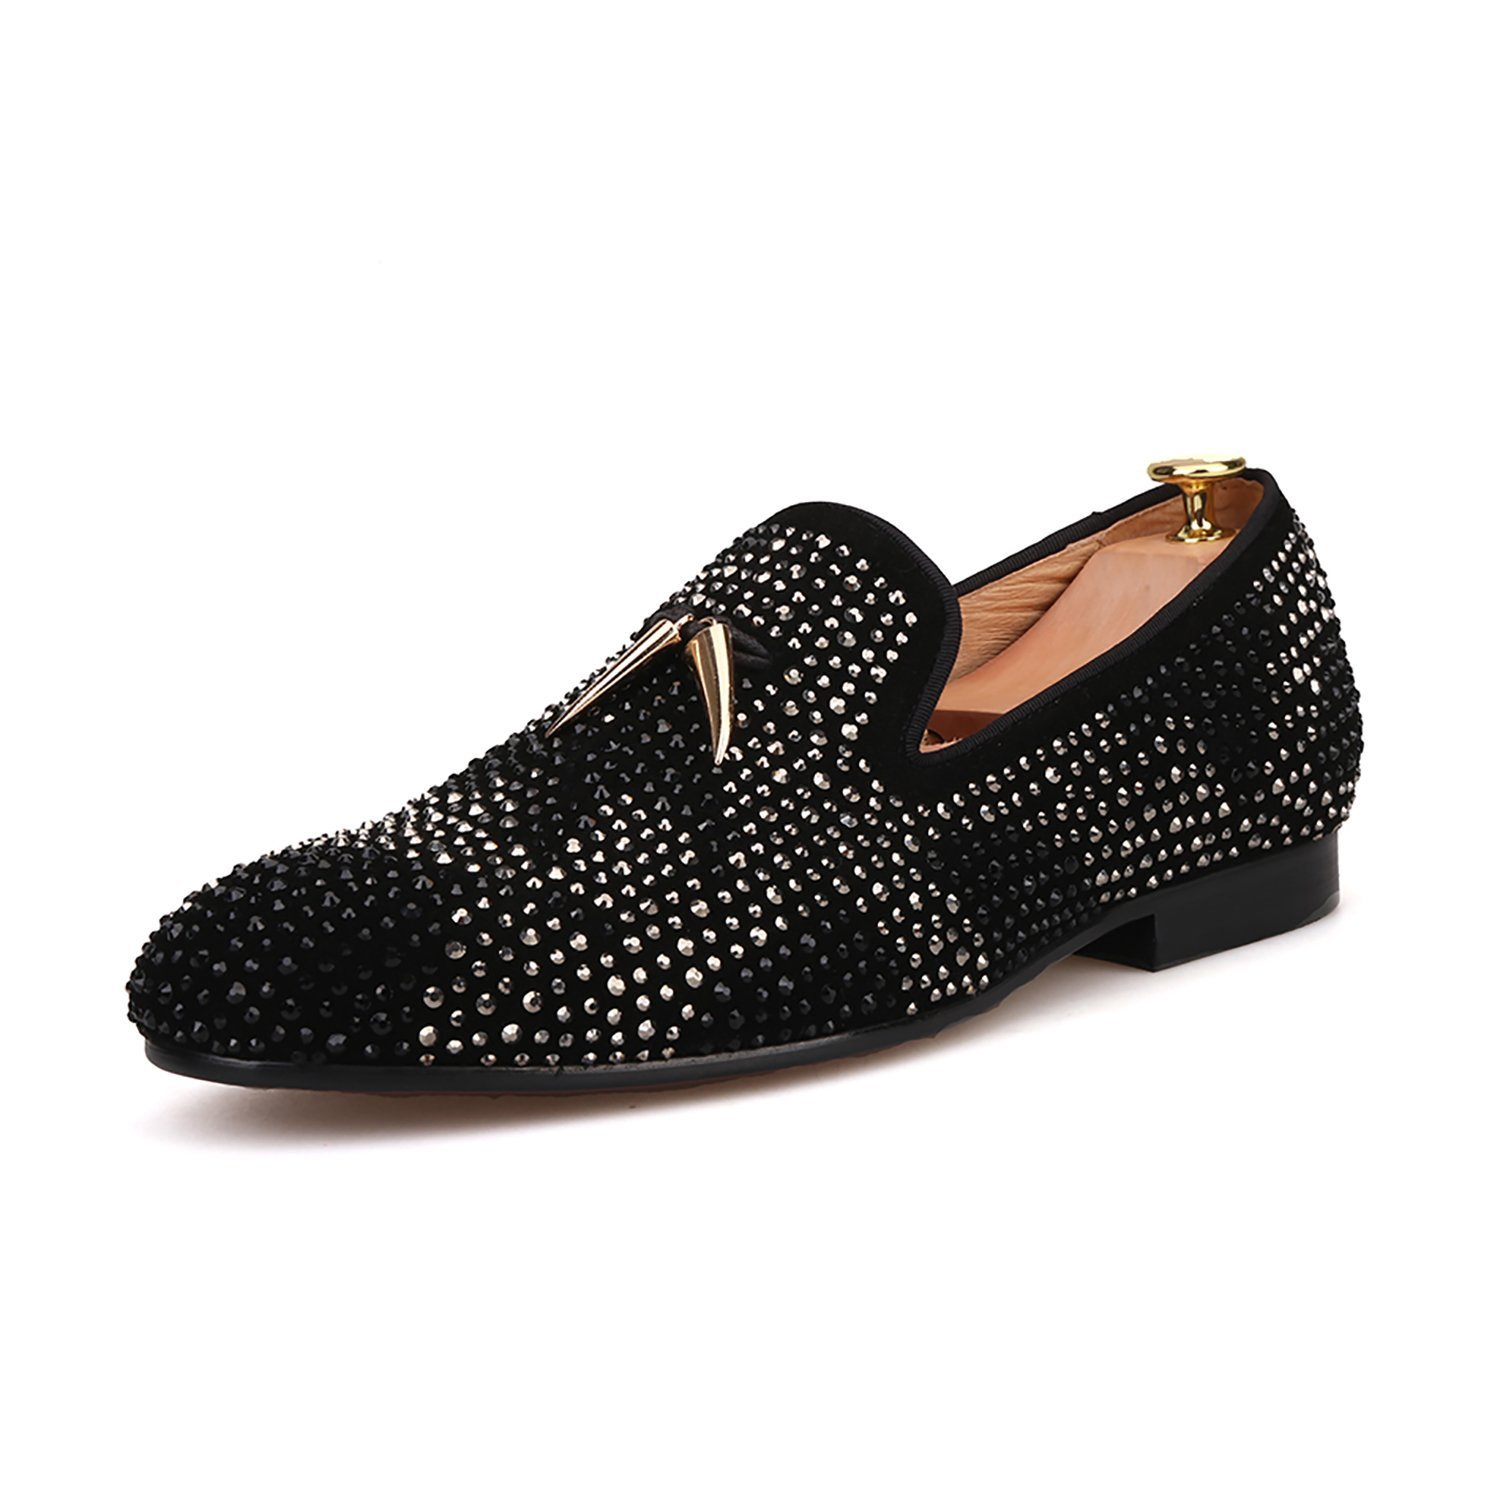 5644ce991cc5c Amazon.com | HI&HANN Men's Suede Men Shoe with Gold Tassel and Exquisite  Crystal Shoes Slip-on Loafer Smoking Slipper | Loafers & Slip-Ons